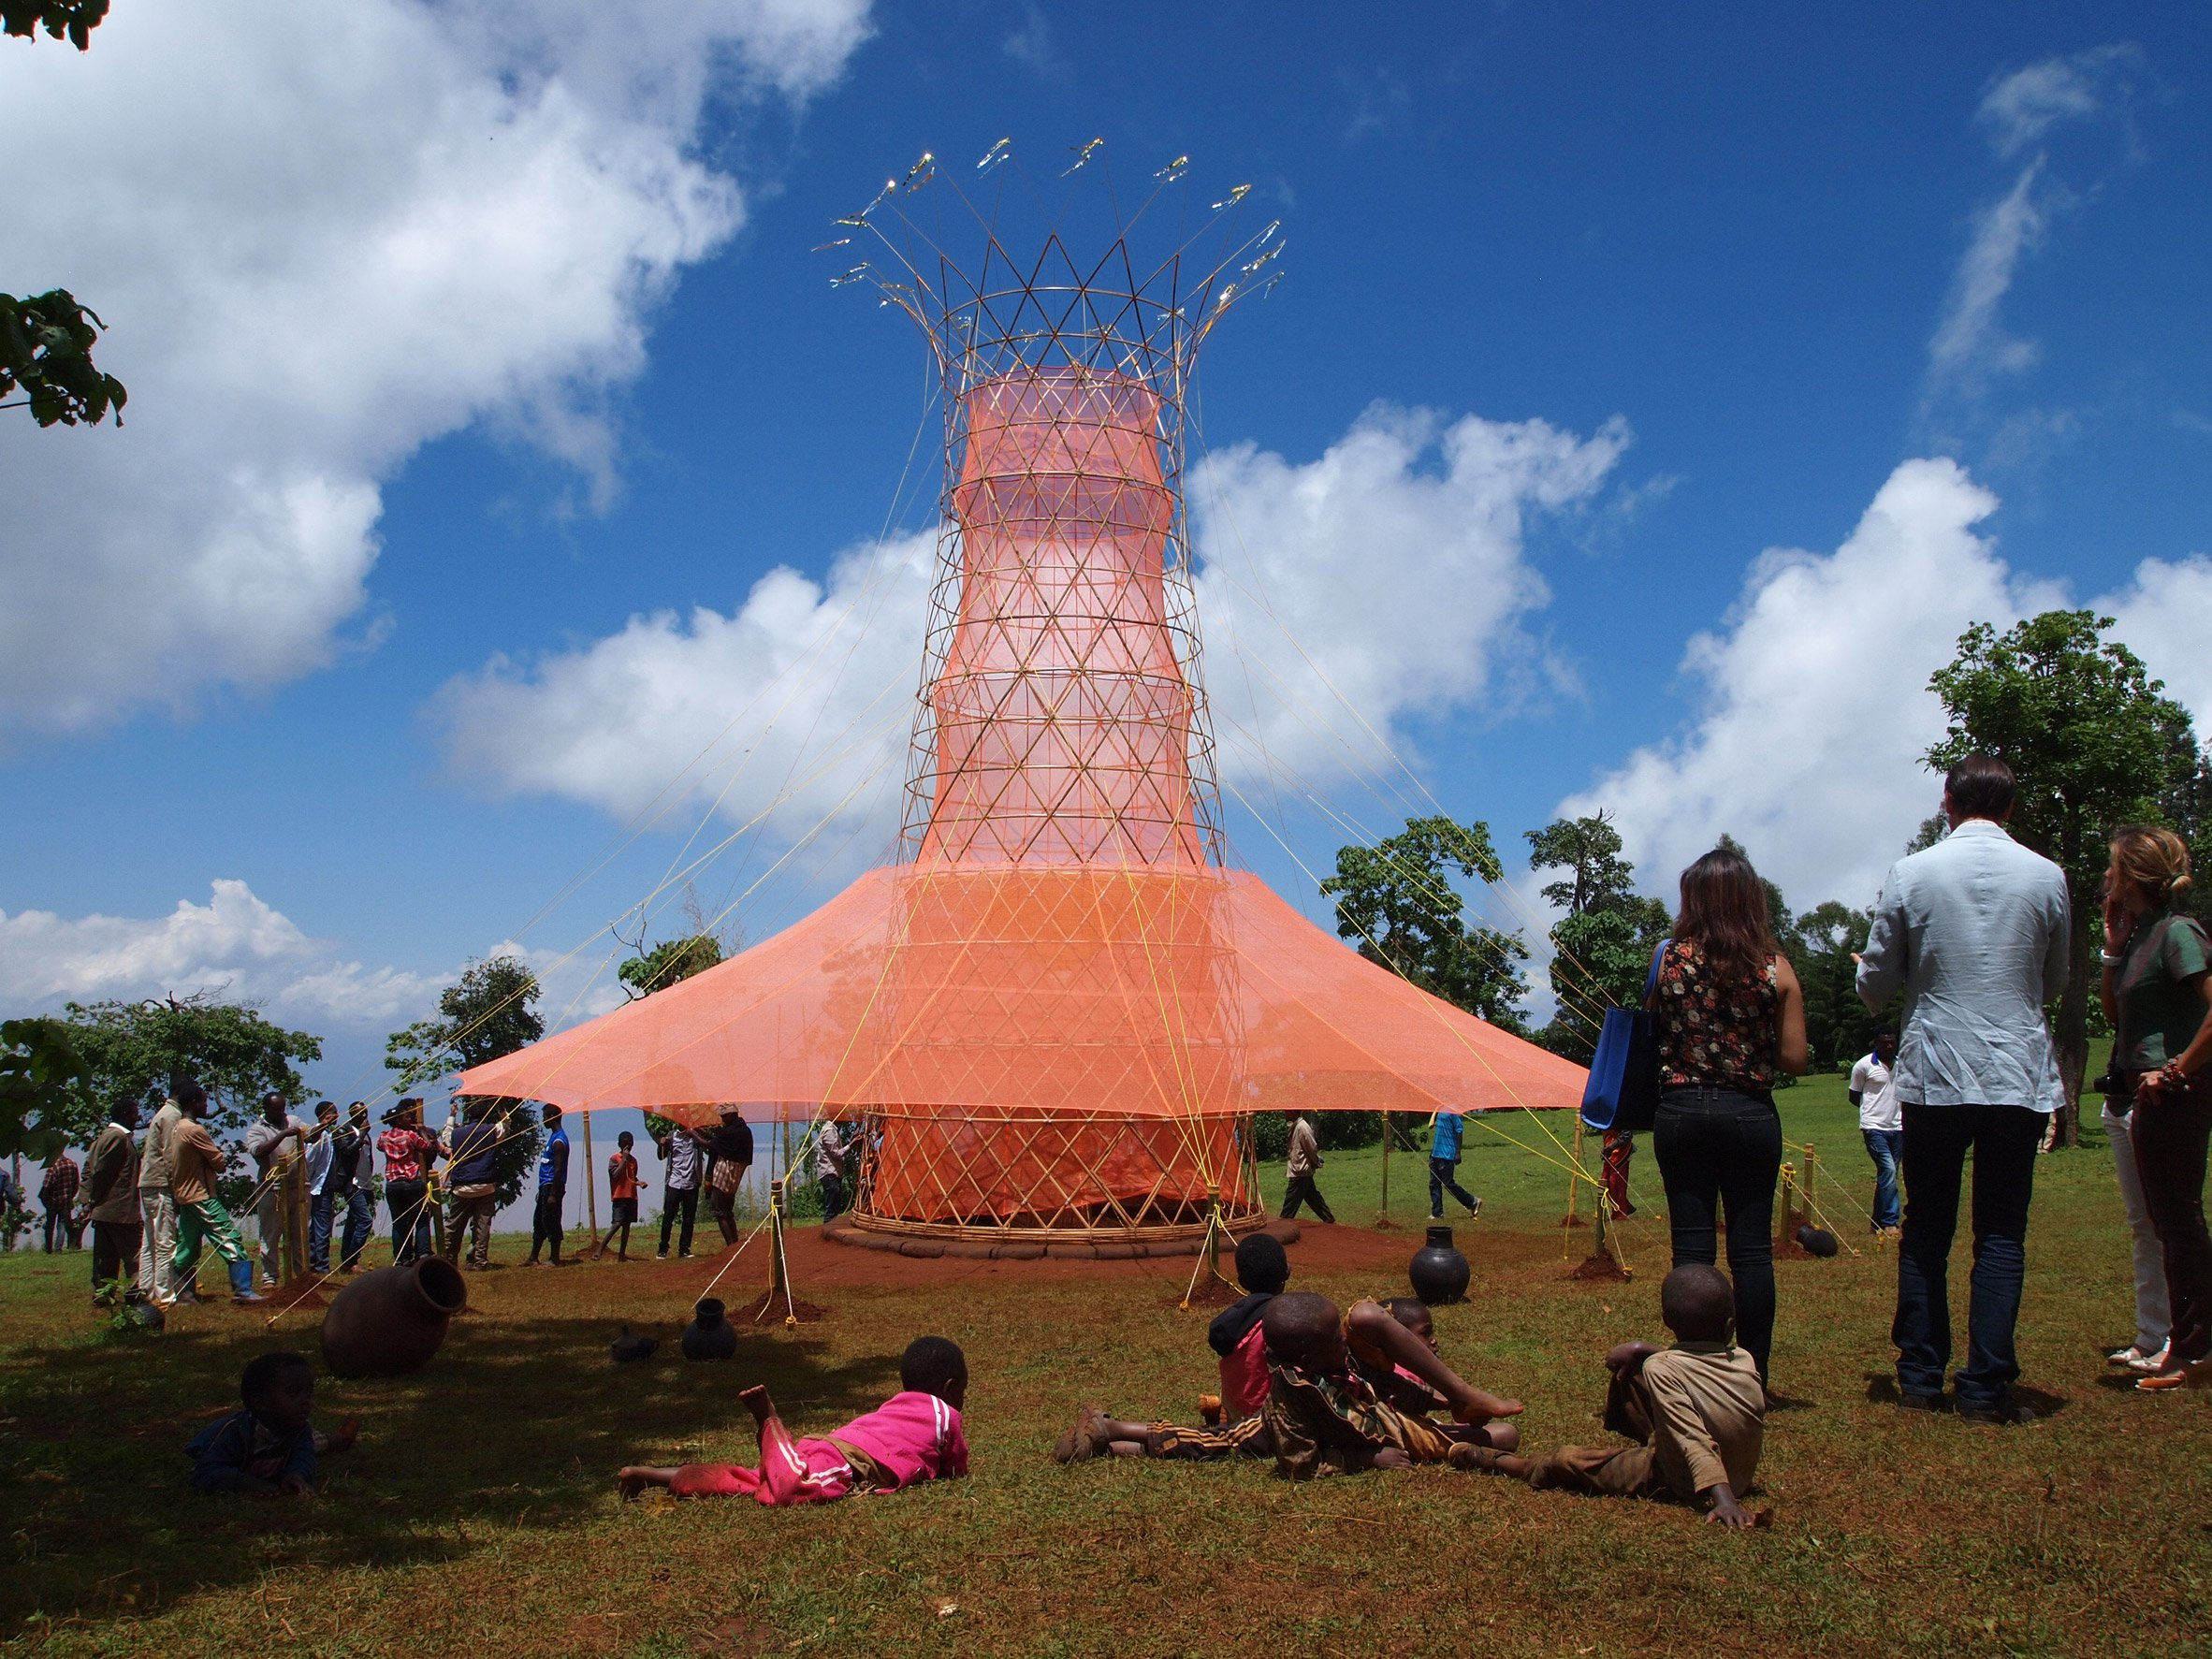 Arturo Vittori's Warka Water towers harvest clean drinking water from the air